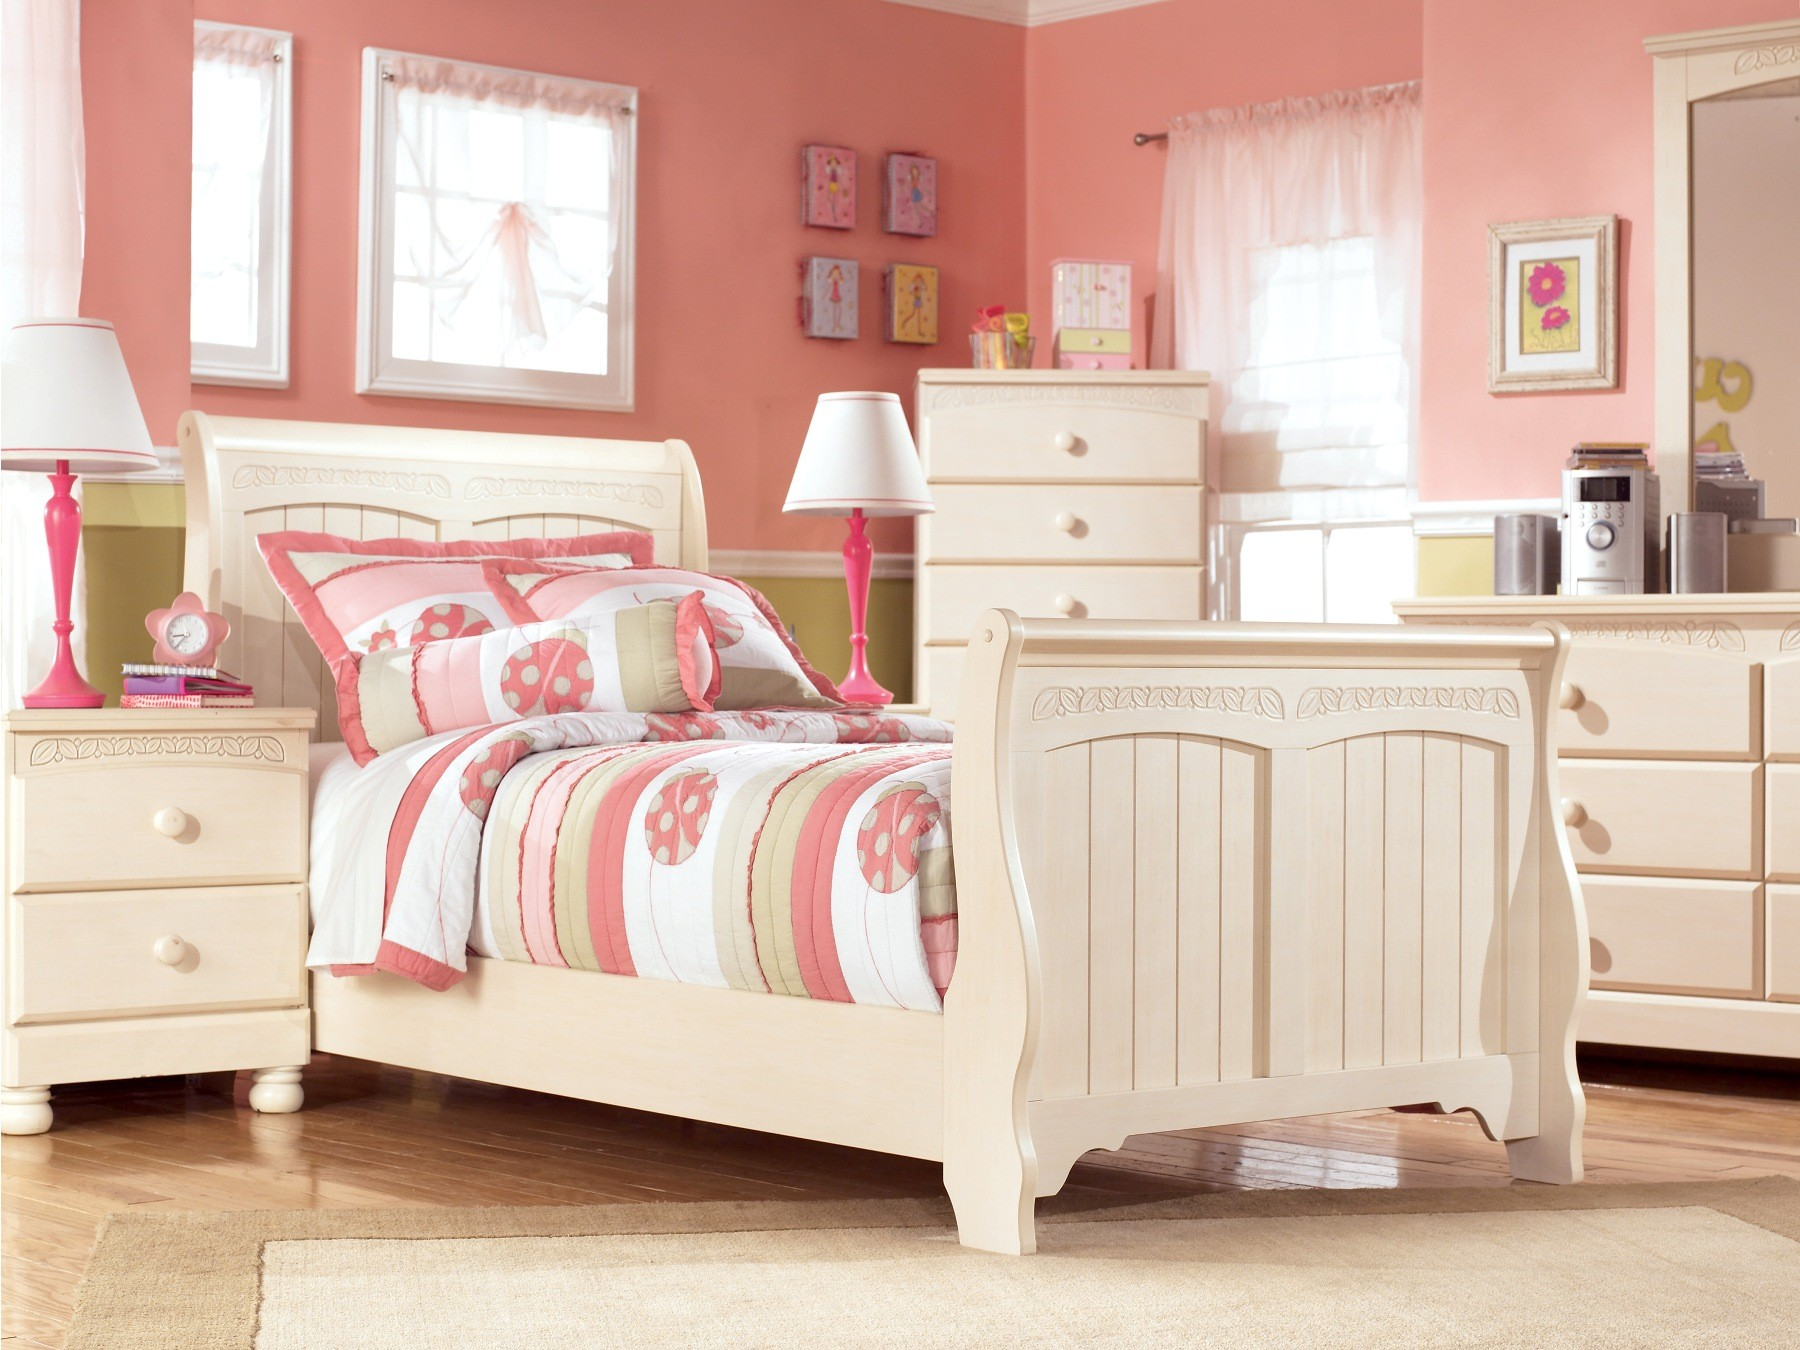 Cottage retreat youth sleigh bedroom set from ashley b213 62 63 82 coleman furniture for Cottage retreat bedroom set